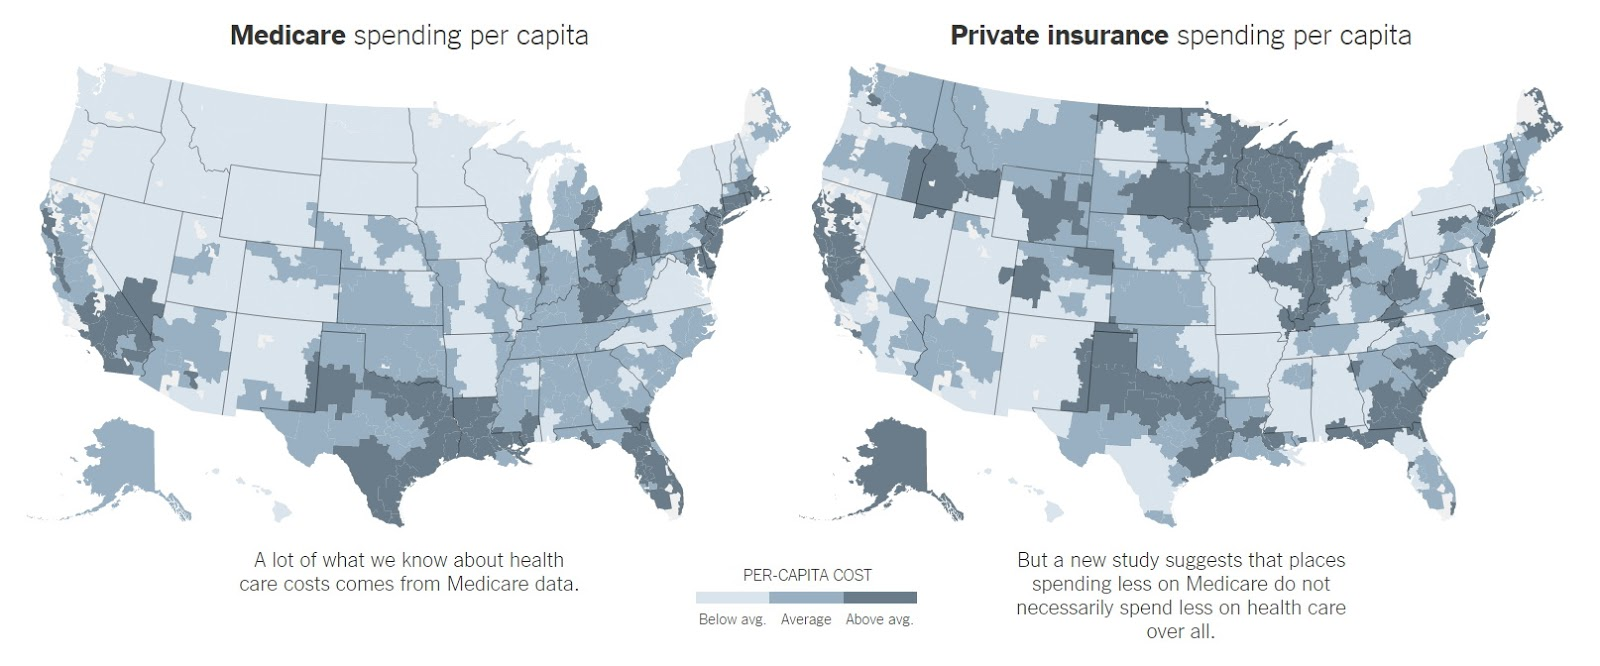 Medicare spending vs private Insurance spending per capita (2015)